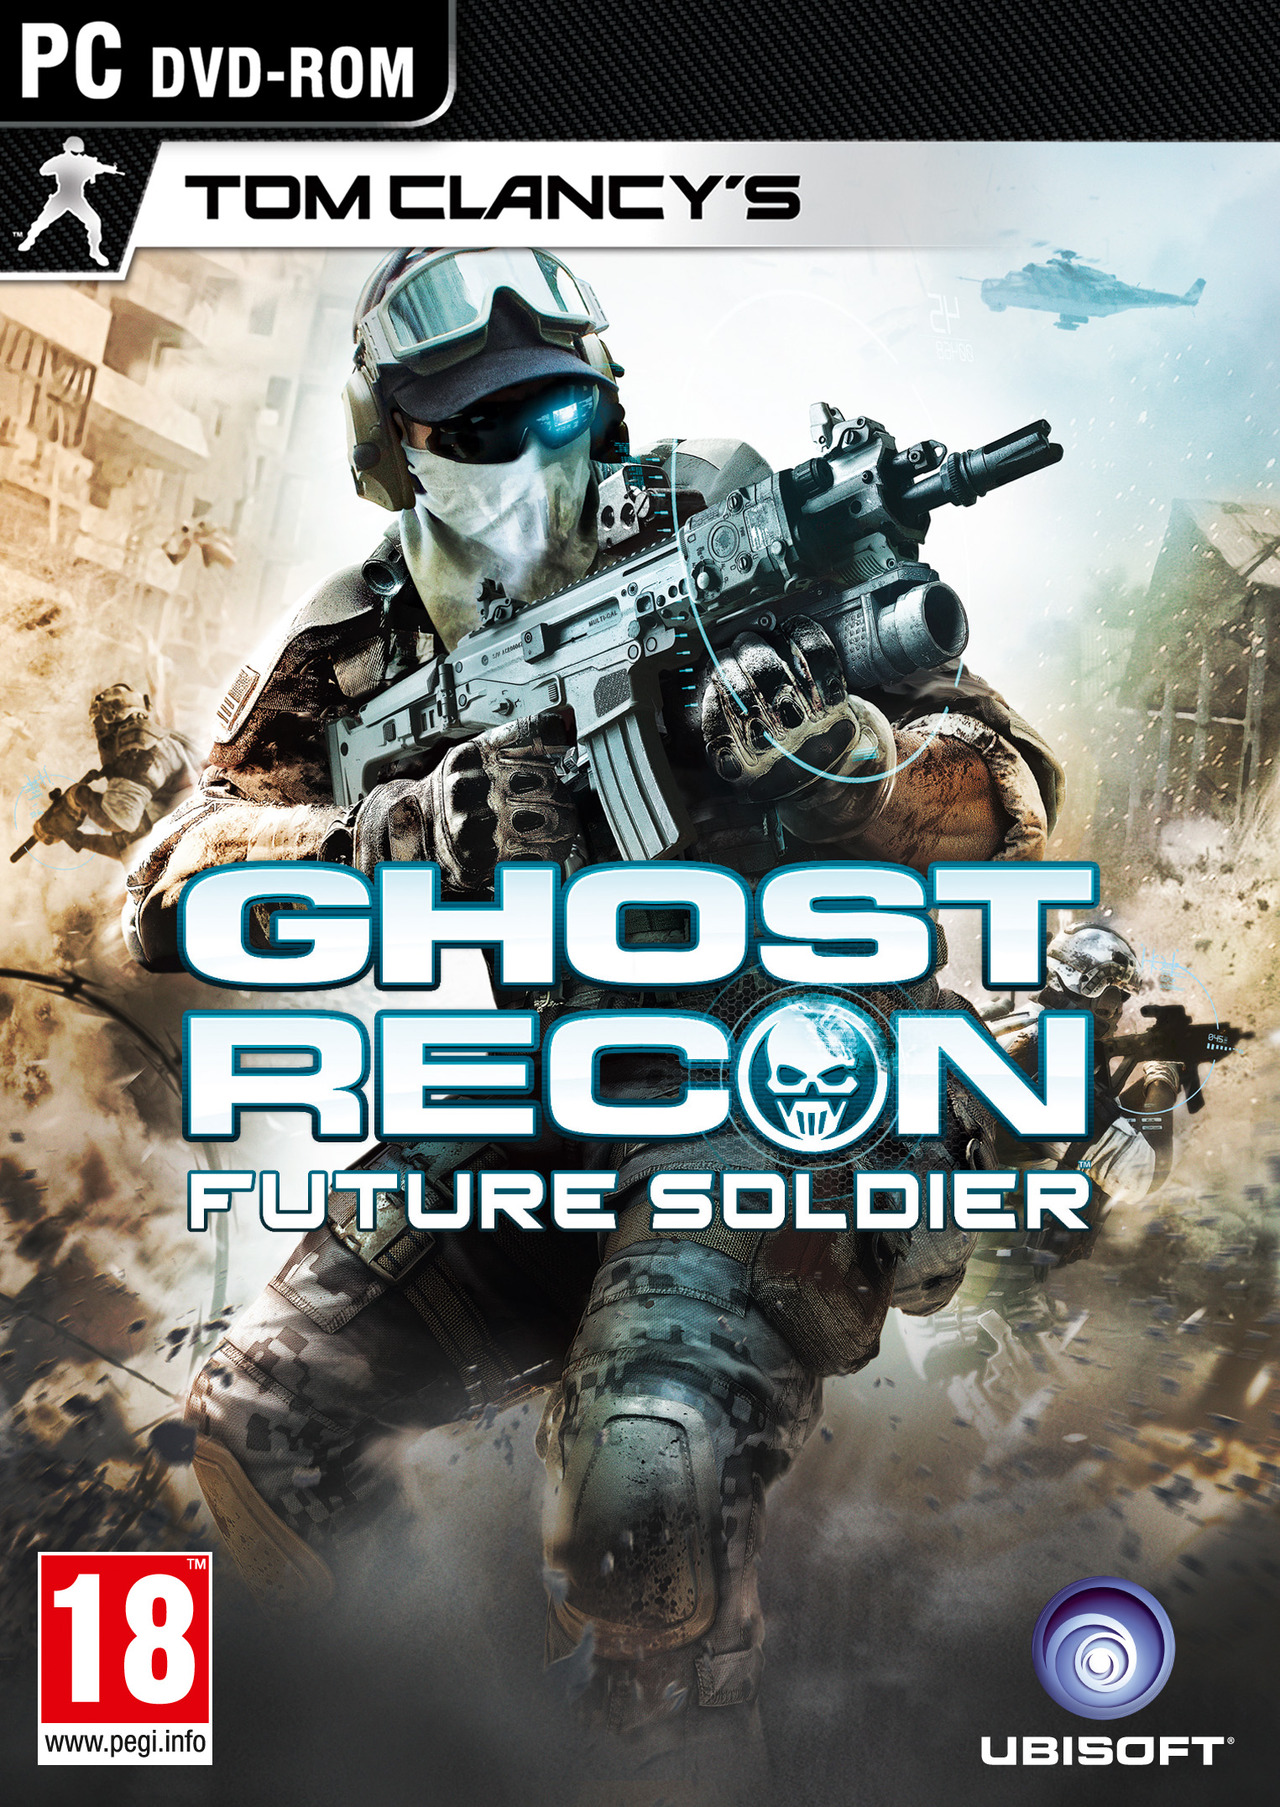 Tom Clancys Ghost Recon Future Soldier + FIX + UPDATE [FRENCH] (exclue) [MULTI]